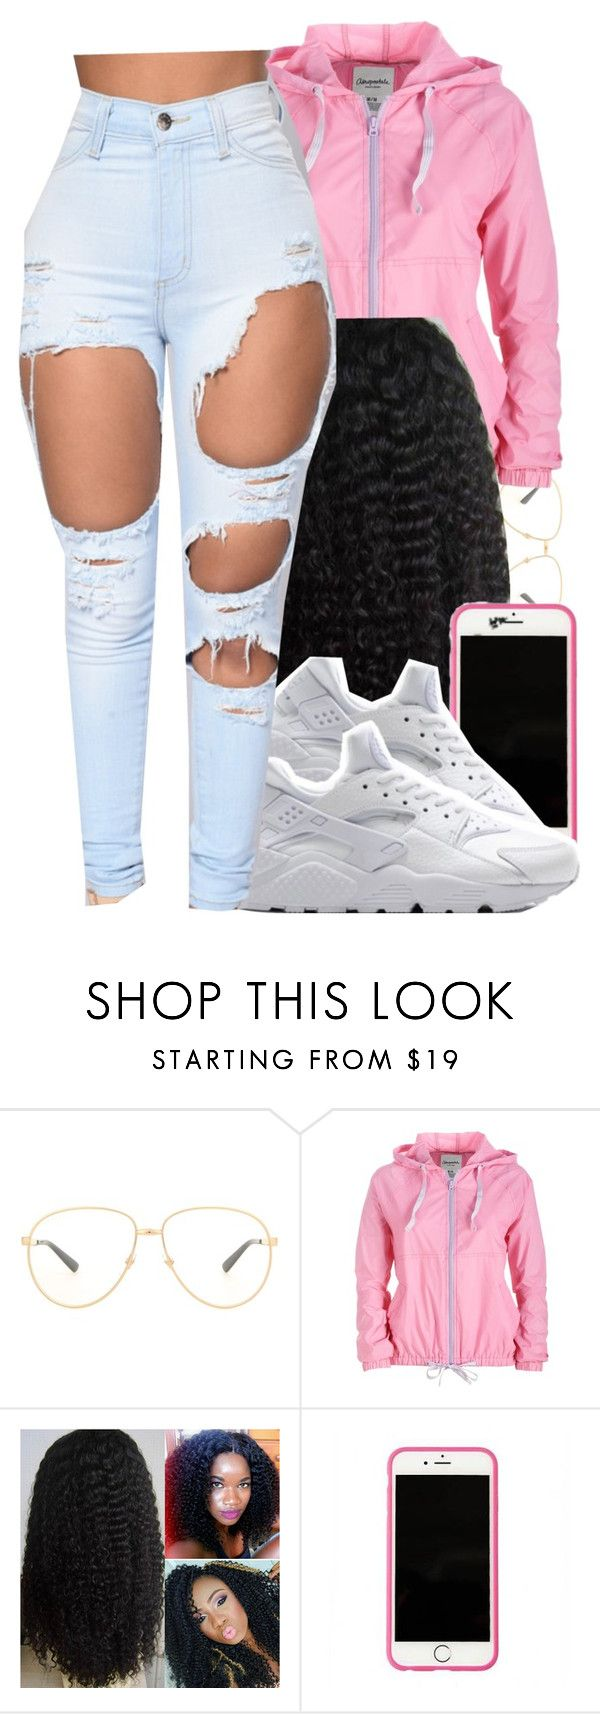 """""""chilling outside ✨"""" by jchristina ❤ liked on Polyvore featuring interior, interiors, interior design, home, home decor, interior decorating, Gucci and Lilly Pulitzer"""